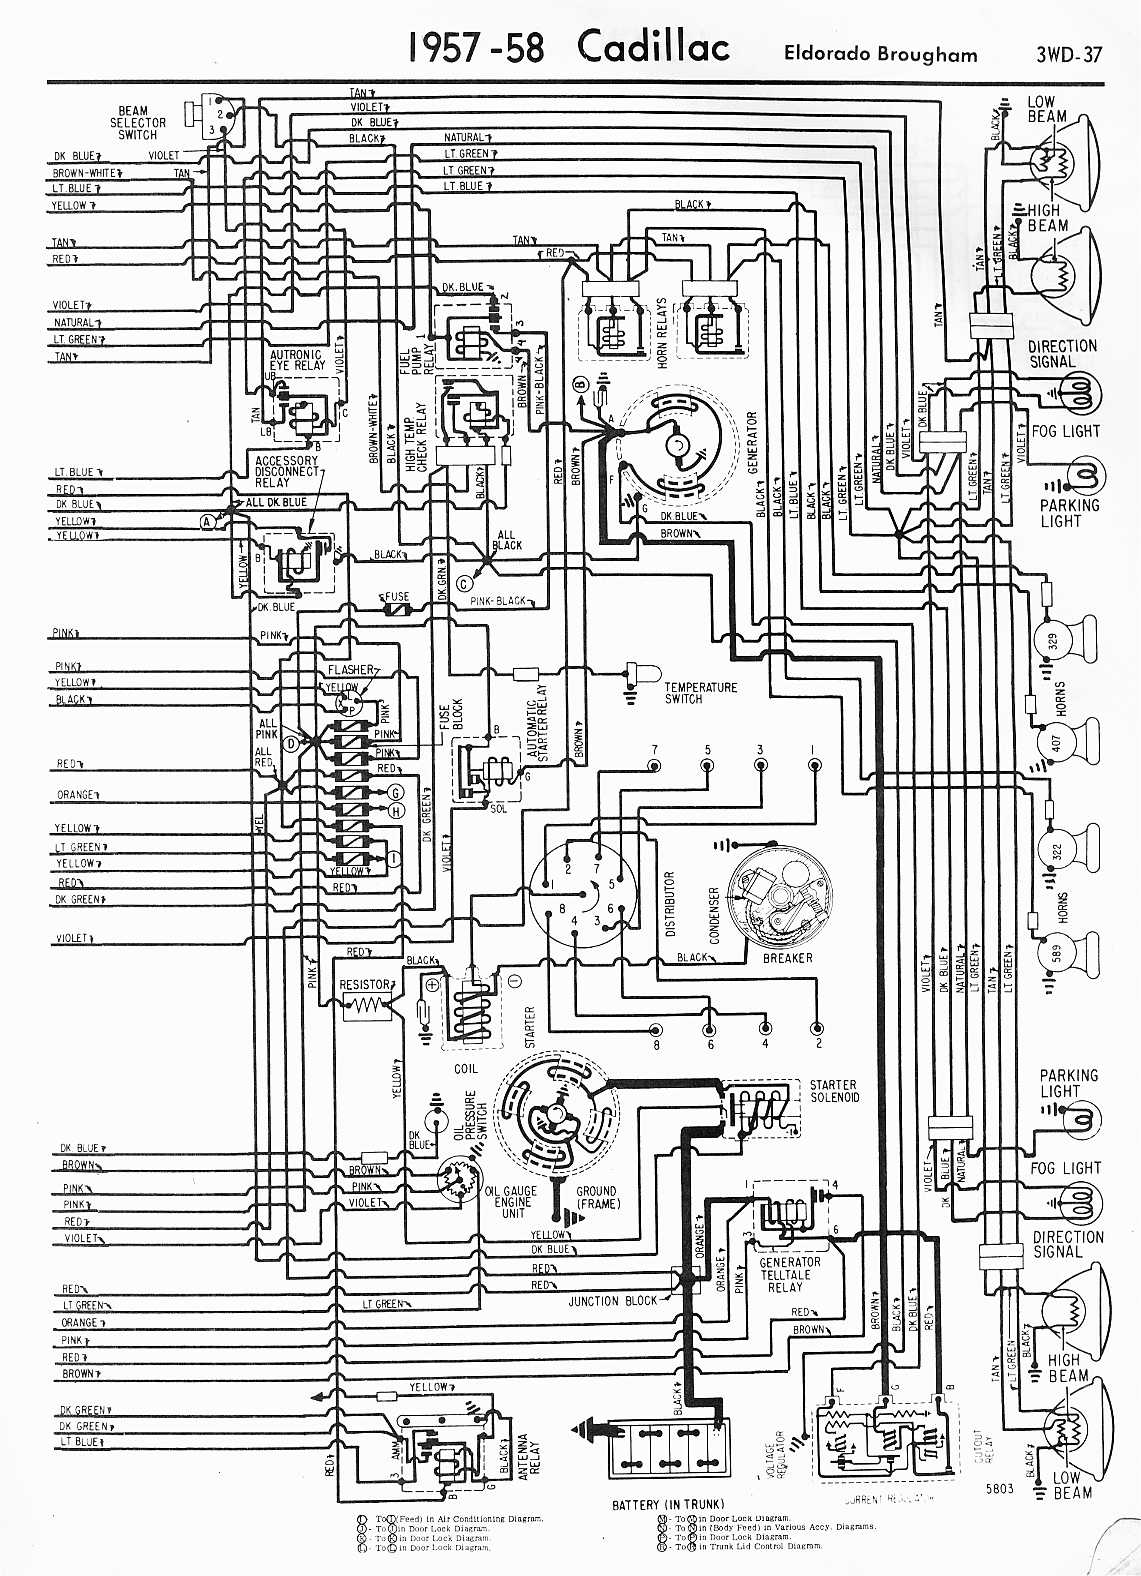 MWireCadi65_3WD 037 cadillac wiring diagrams 1957 1965 2002 cadillac deville fuse box diagram at soozxer.org